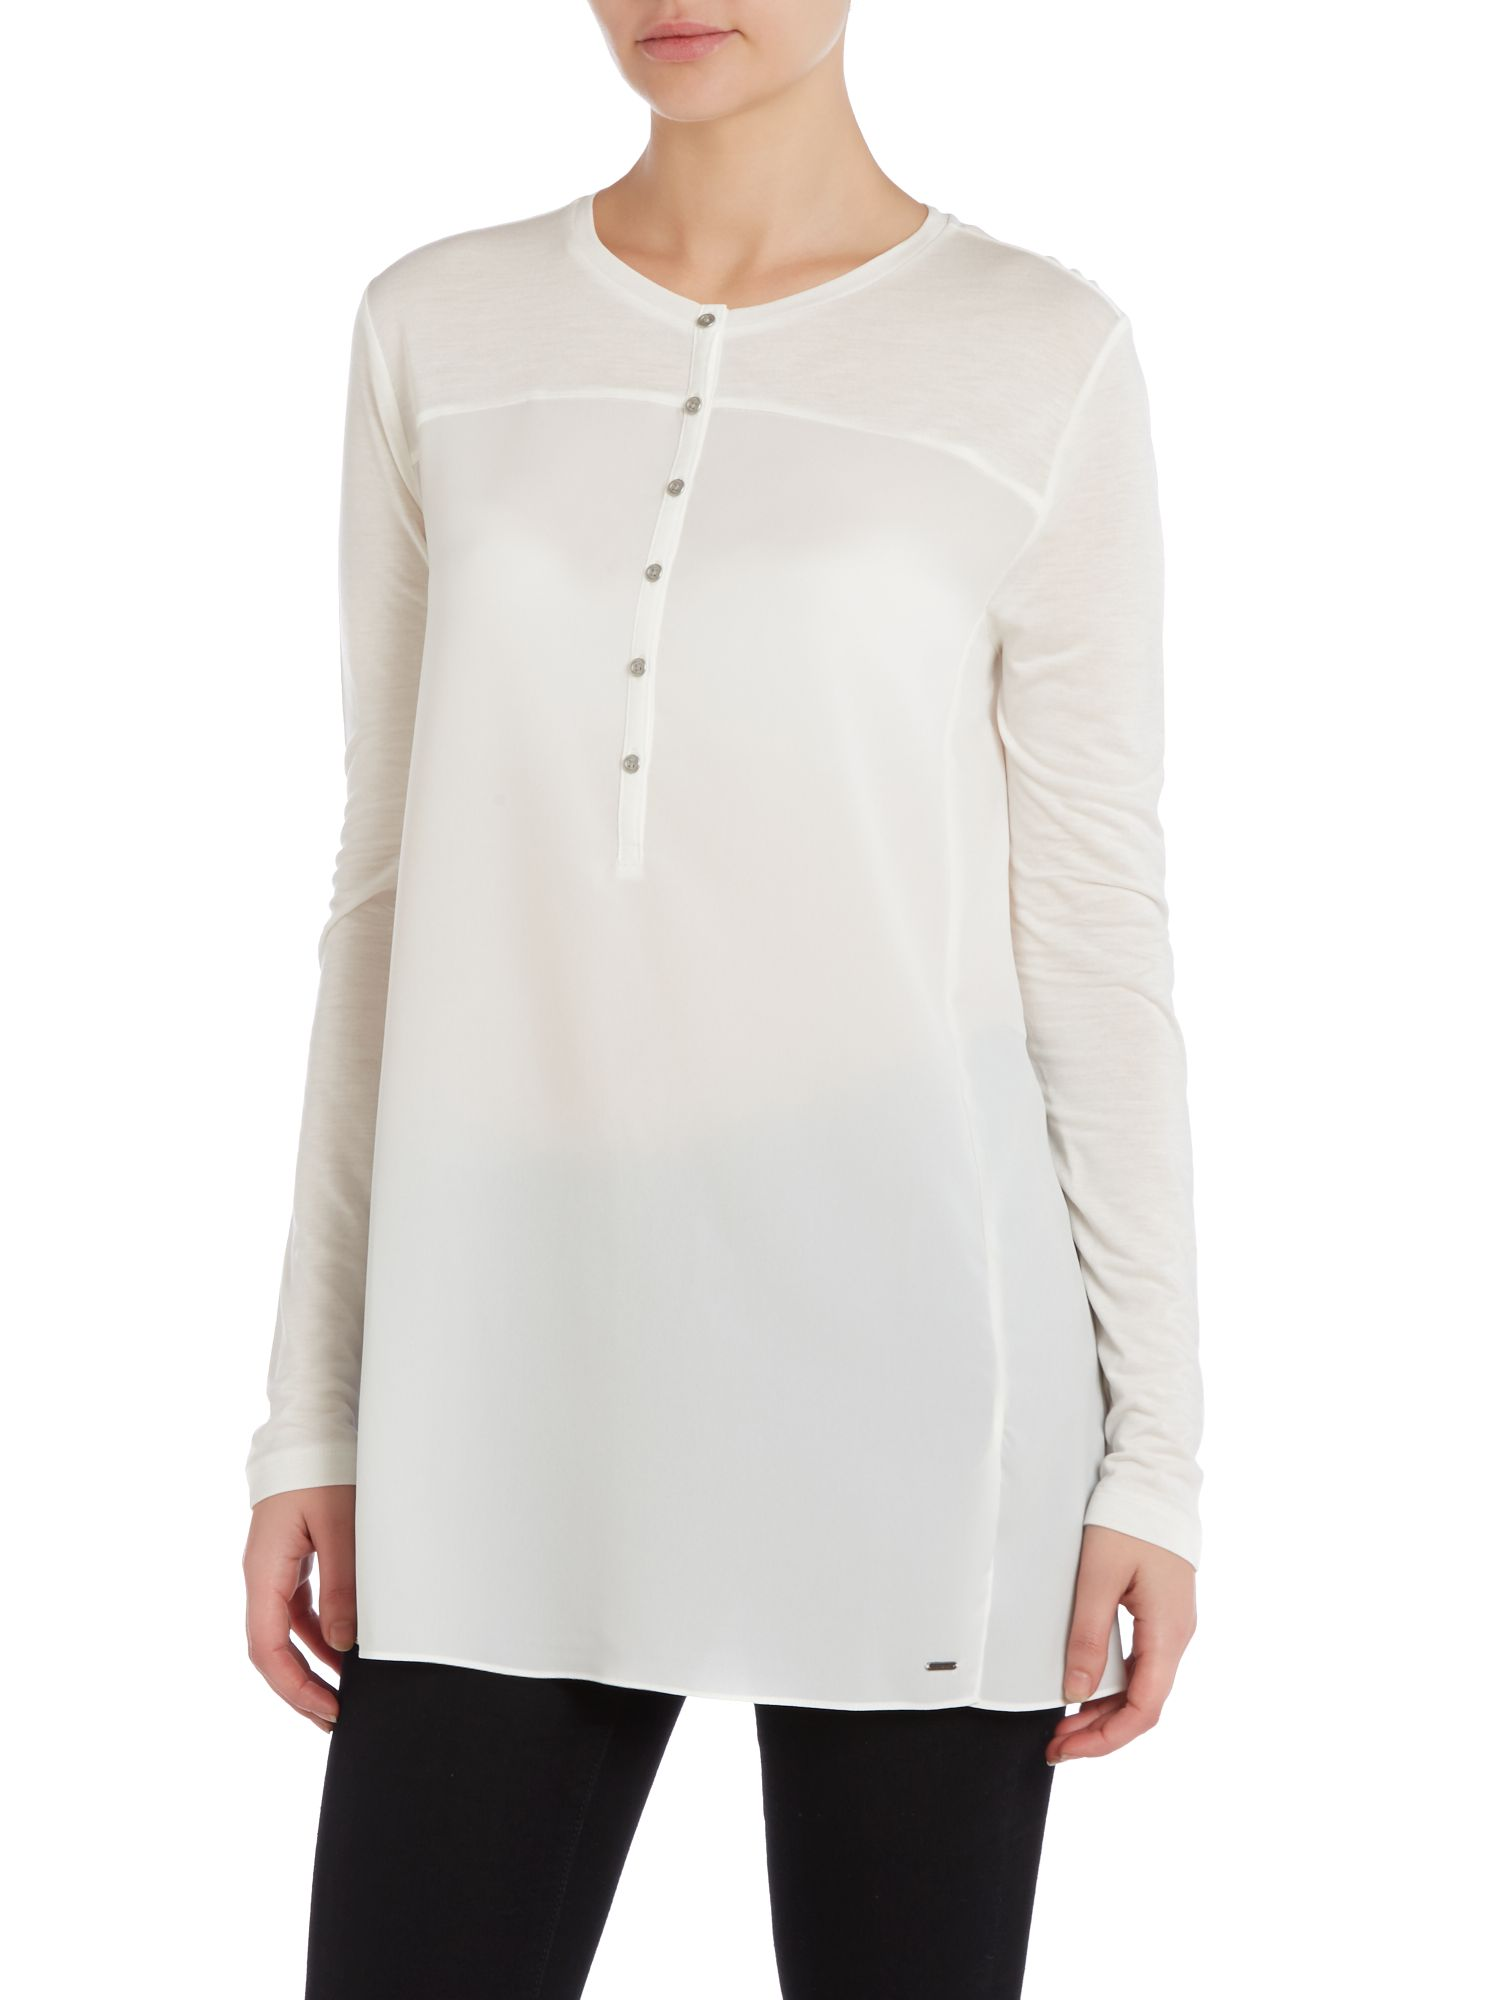 Long sleeve tess top in snow white